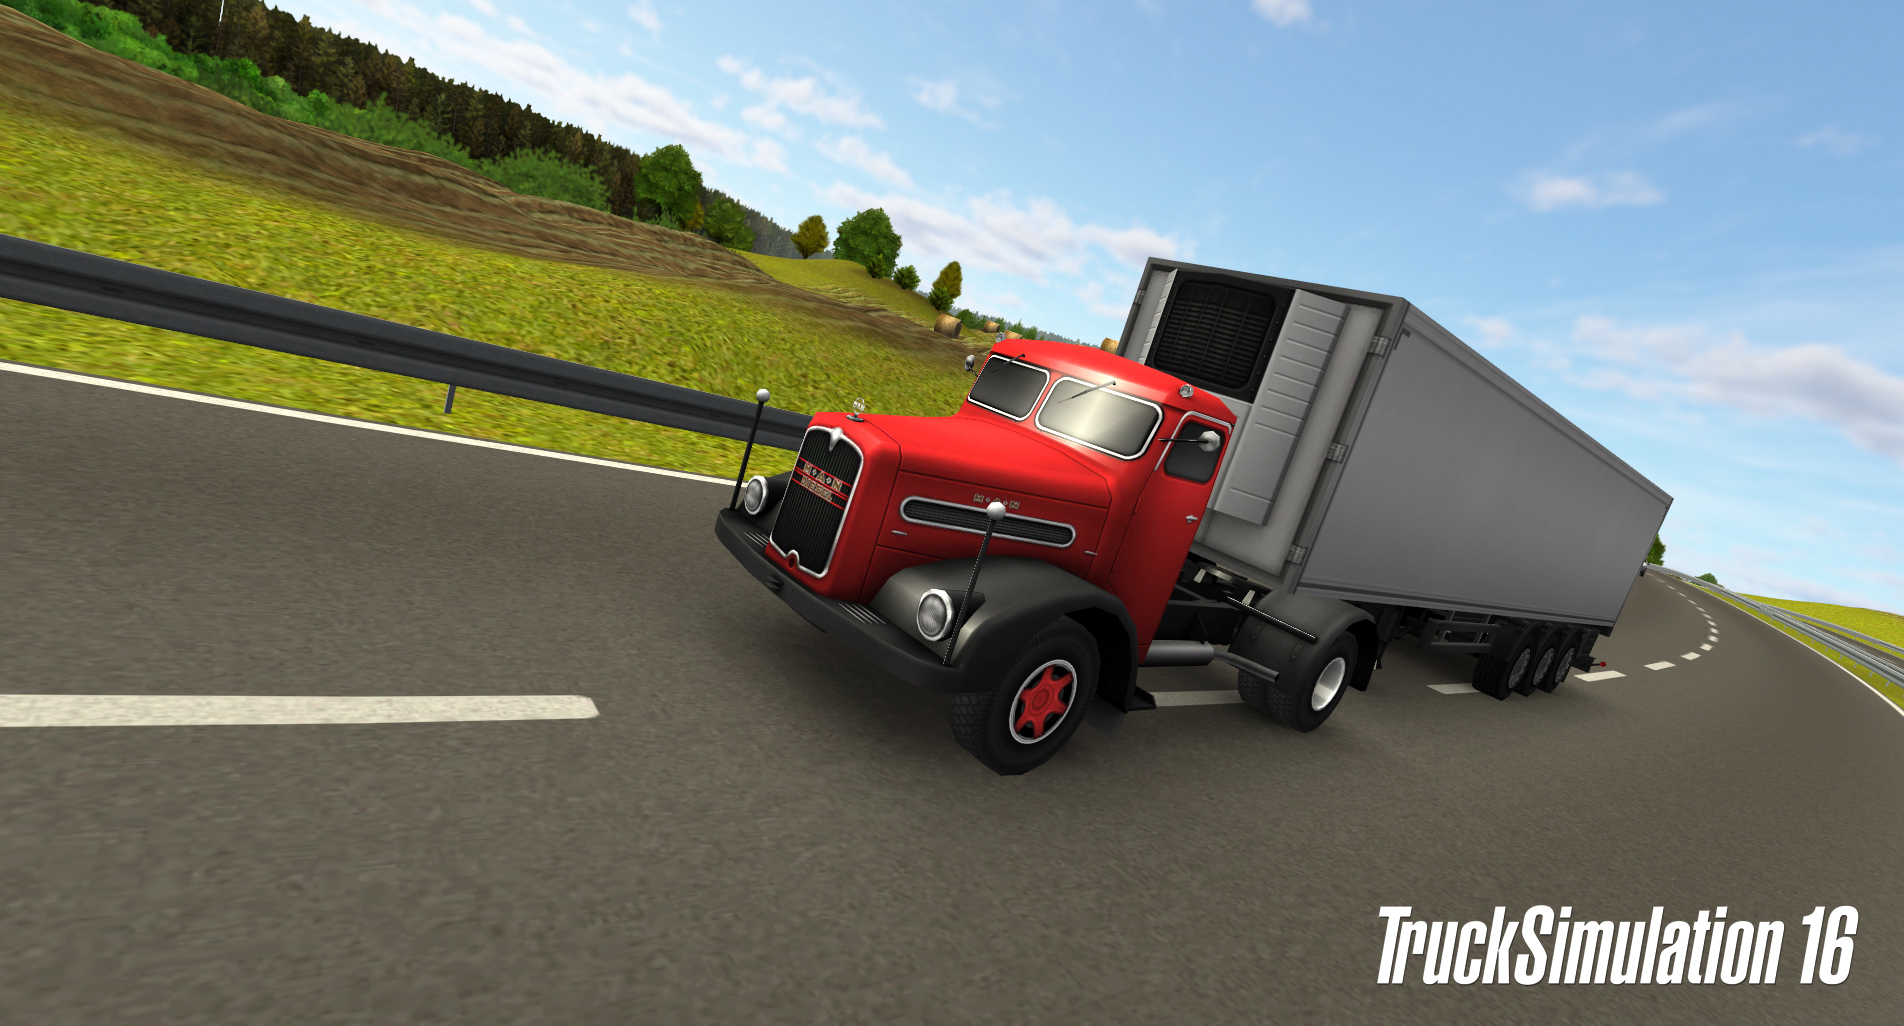 TruckSimulation 16 does what it says on the tin on iOS and Android right now